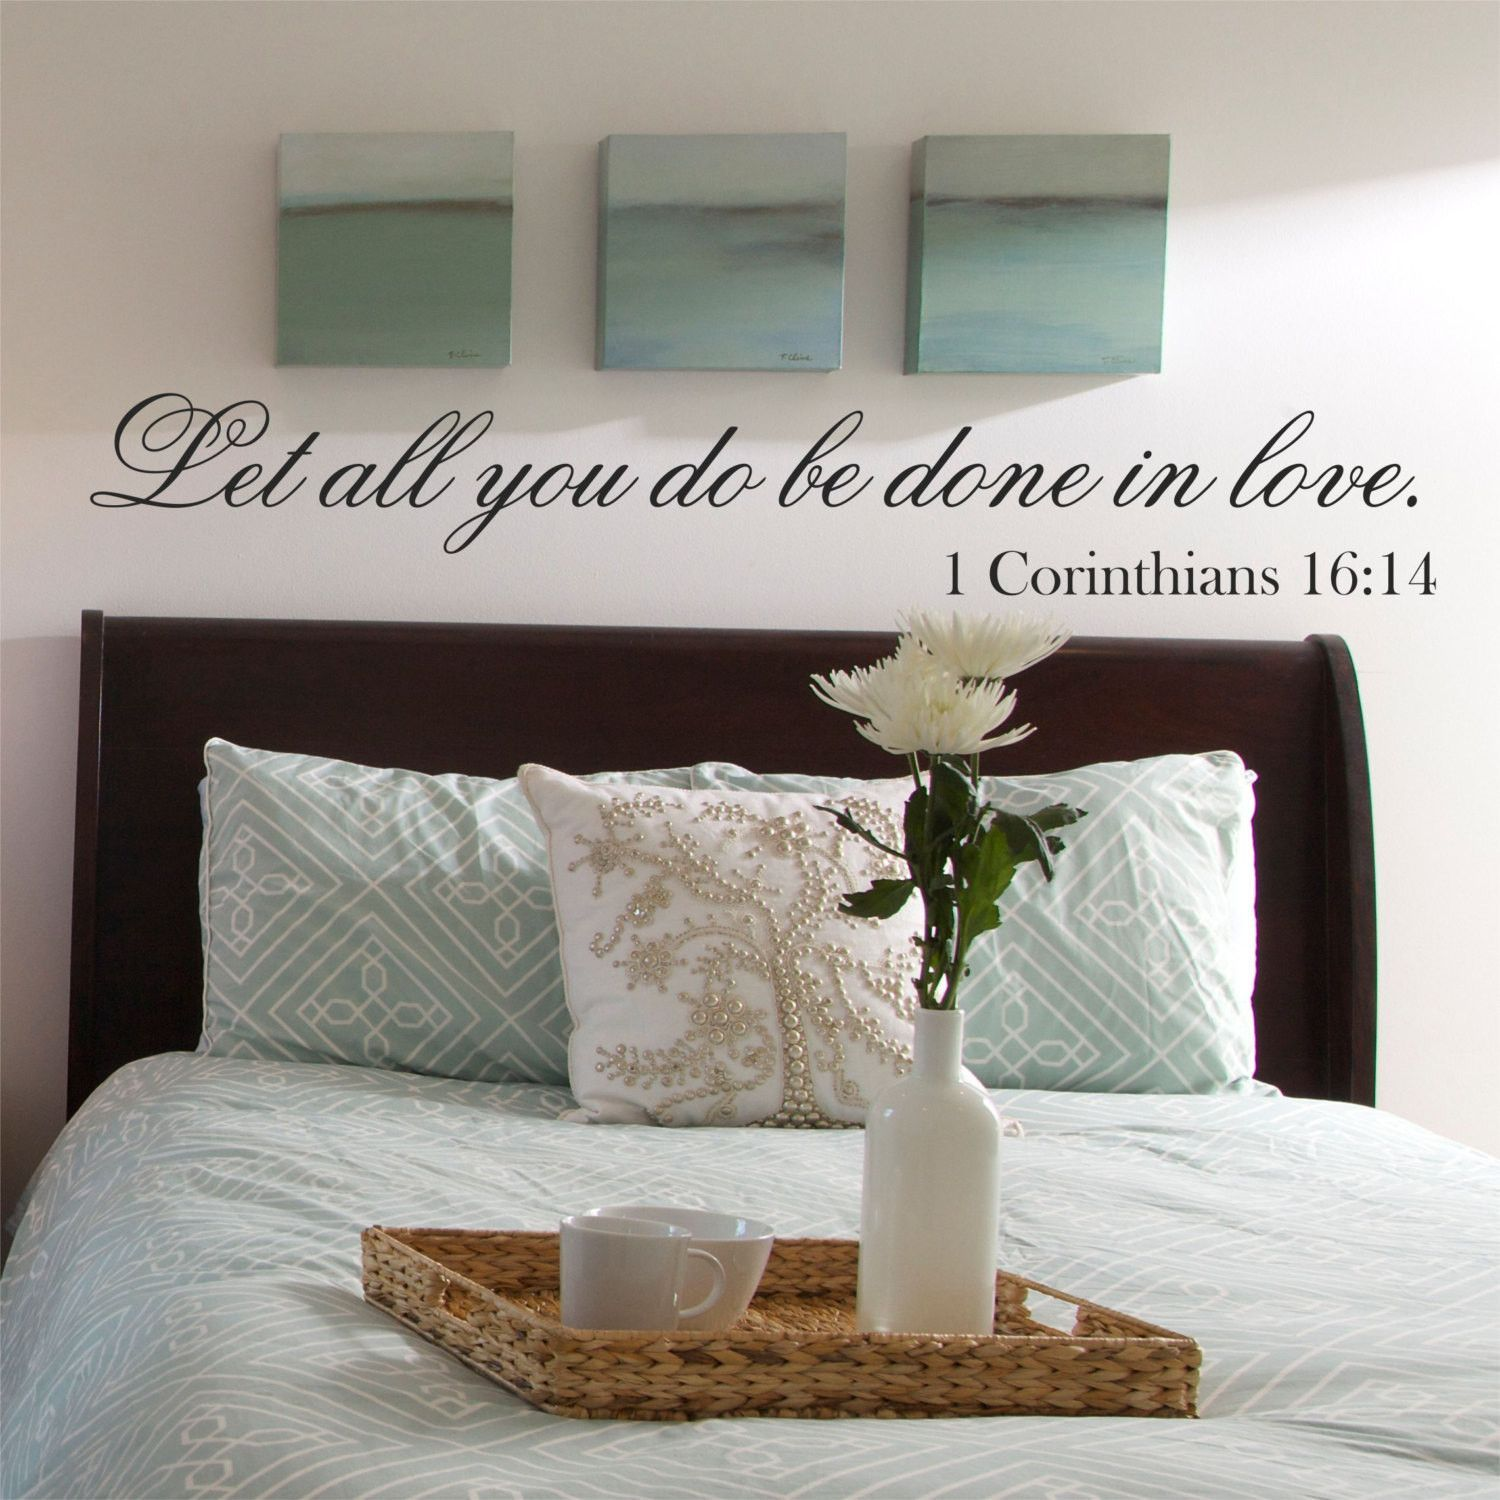 Let all you do be done in love bible quote wall quote vinyl wall